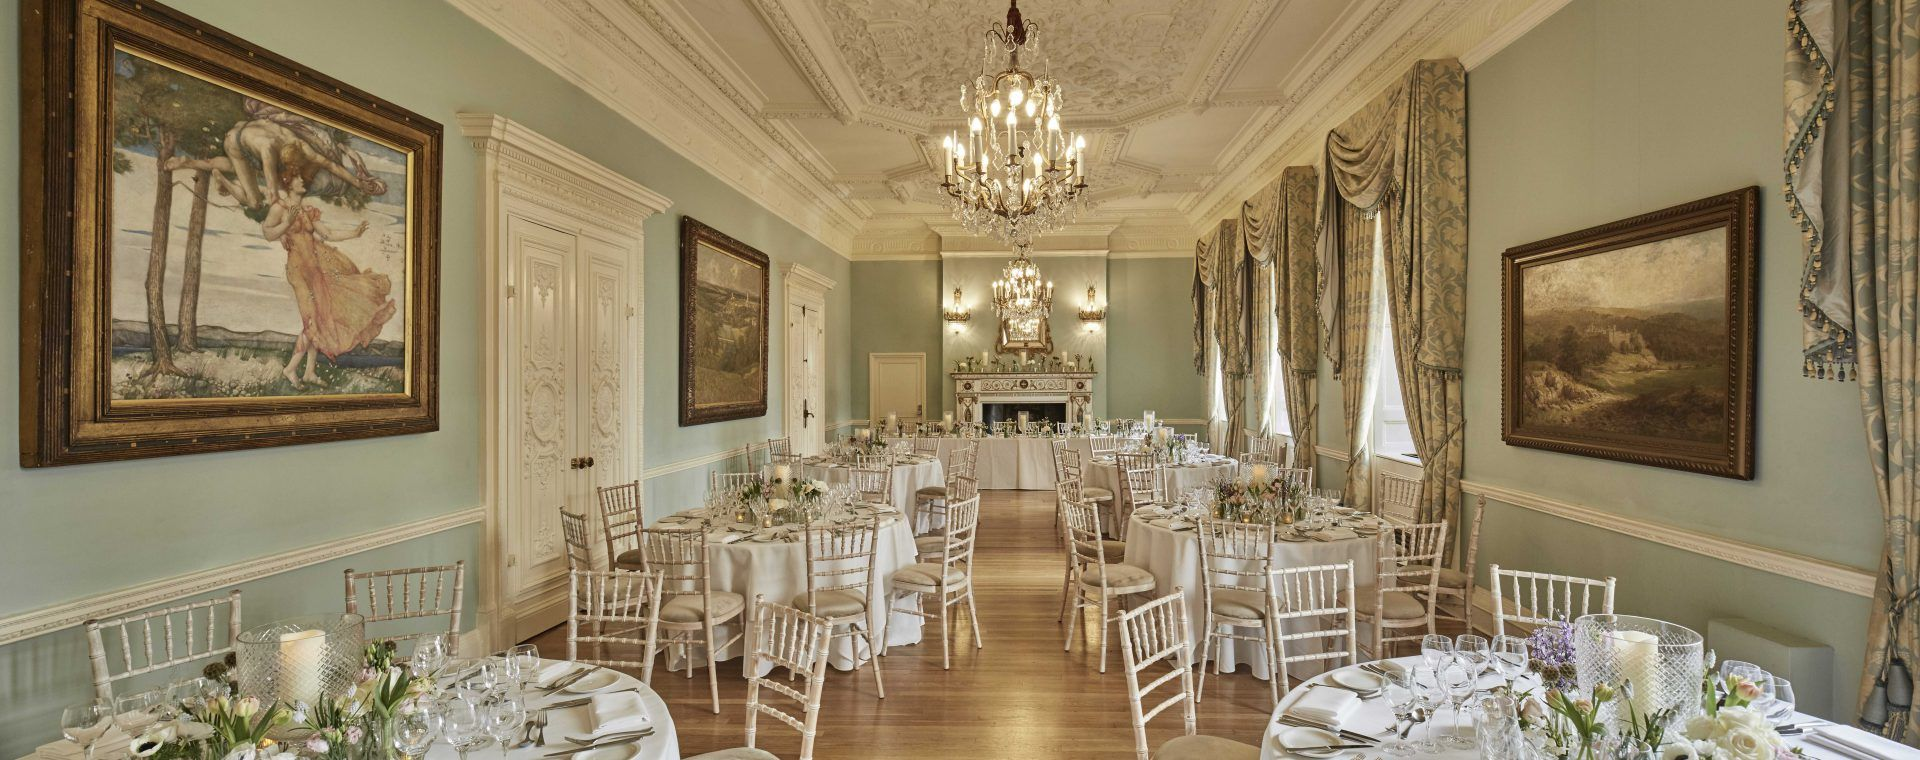 dartmouth house weddings london wedding venues in London